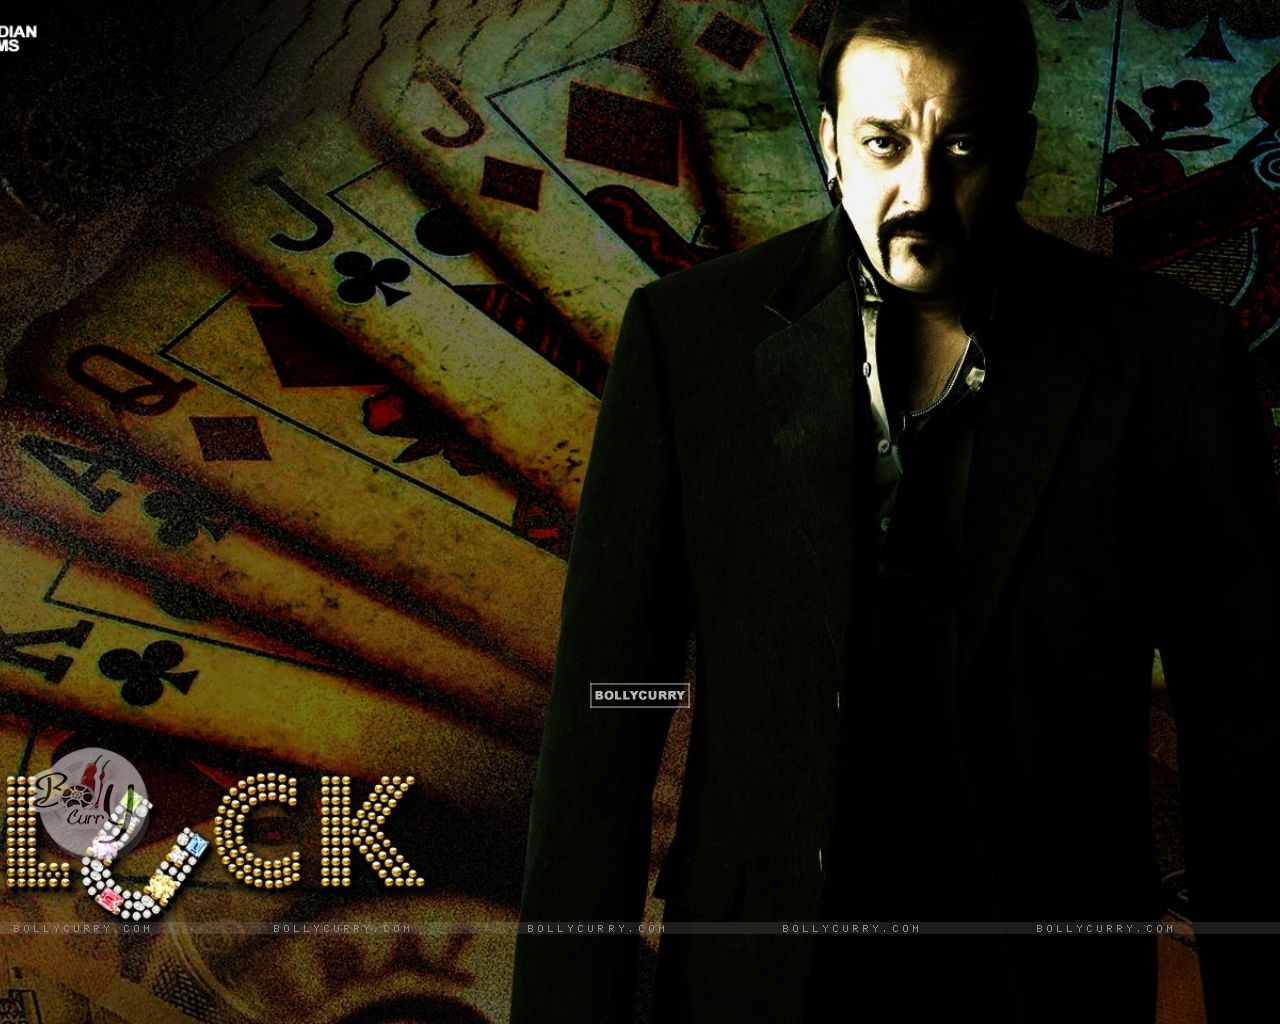 Sanjay Dutt wallpaper from movie Luck wallpaper (Size:1280x1024)